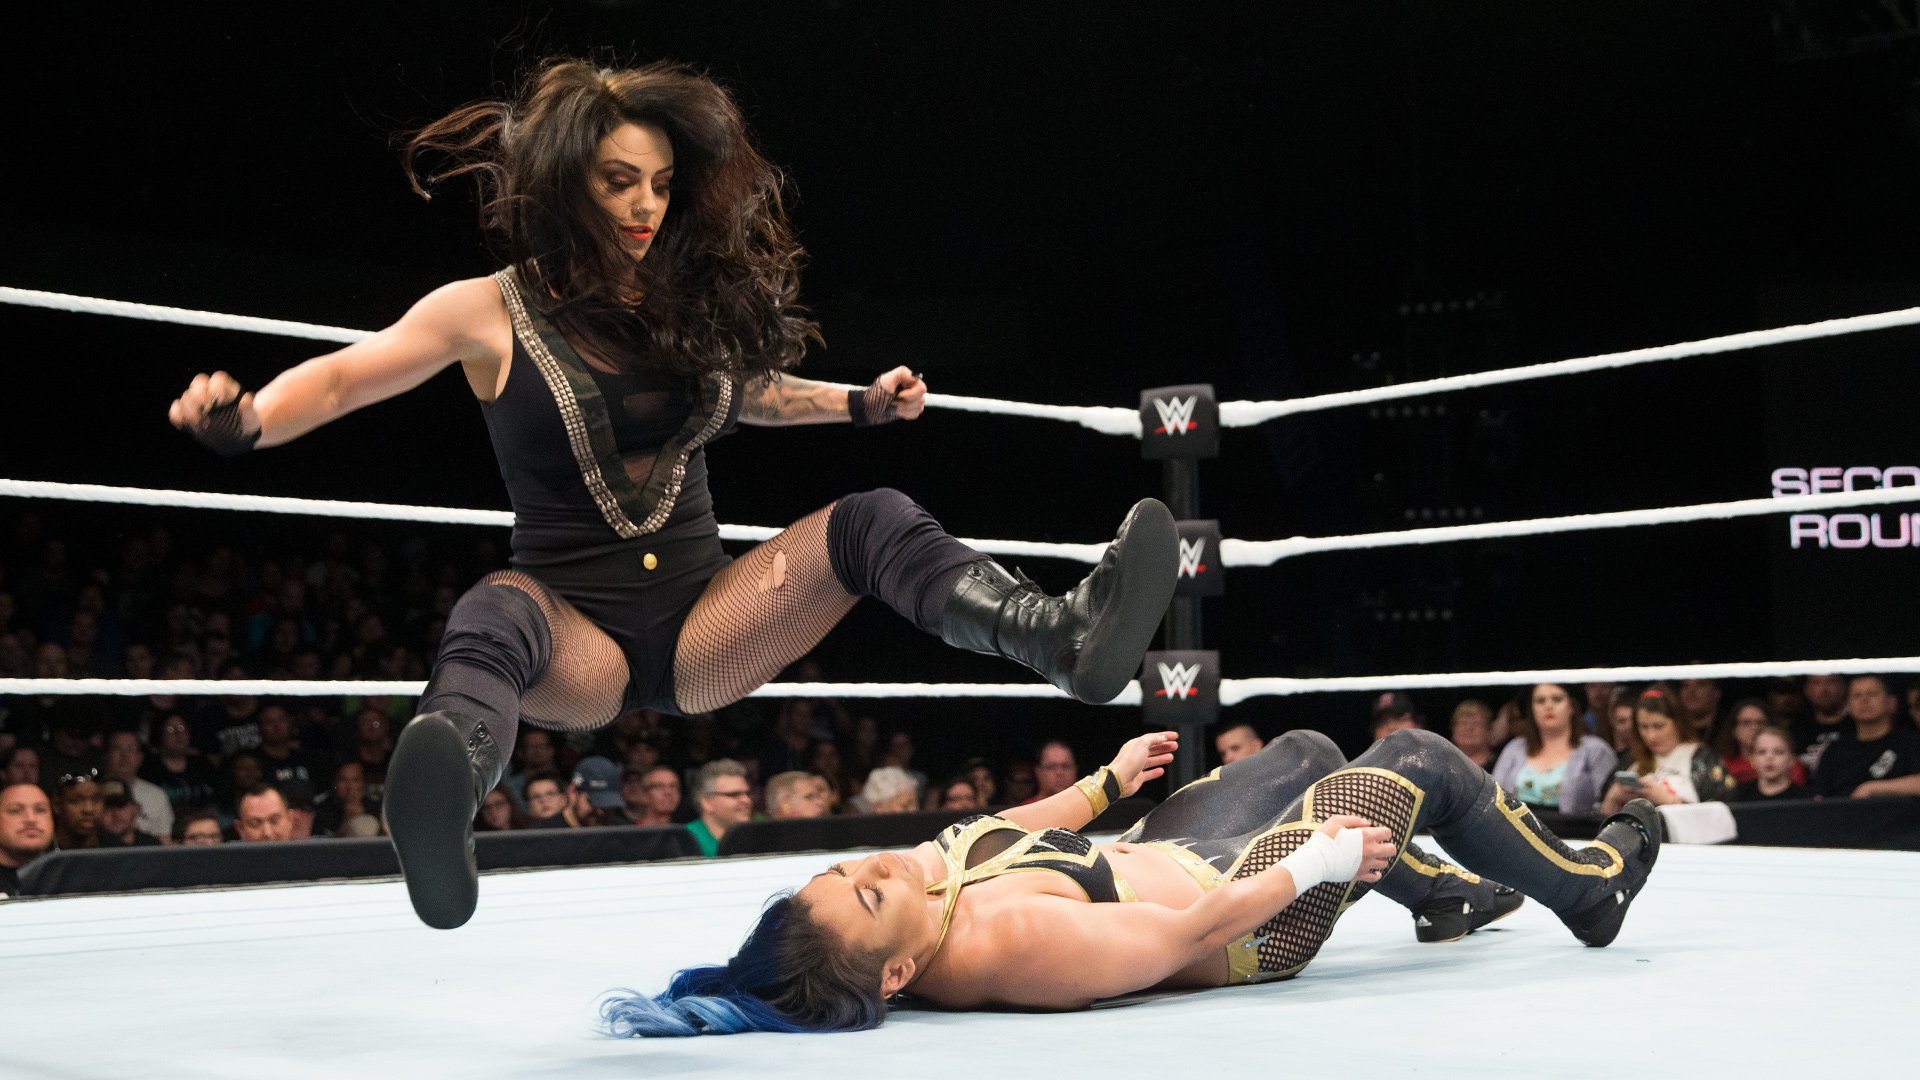 Kaitlyn imposes her will against Mia Yim in an attempt to secure her place in the Mae Young Classic Quarterfinals.